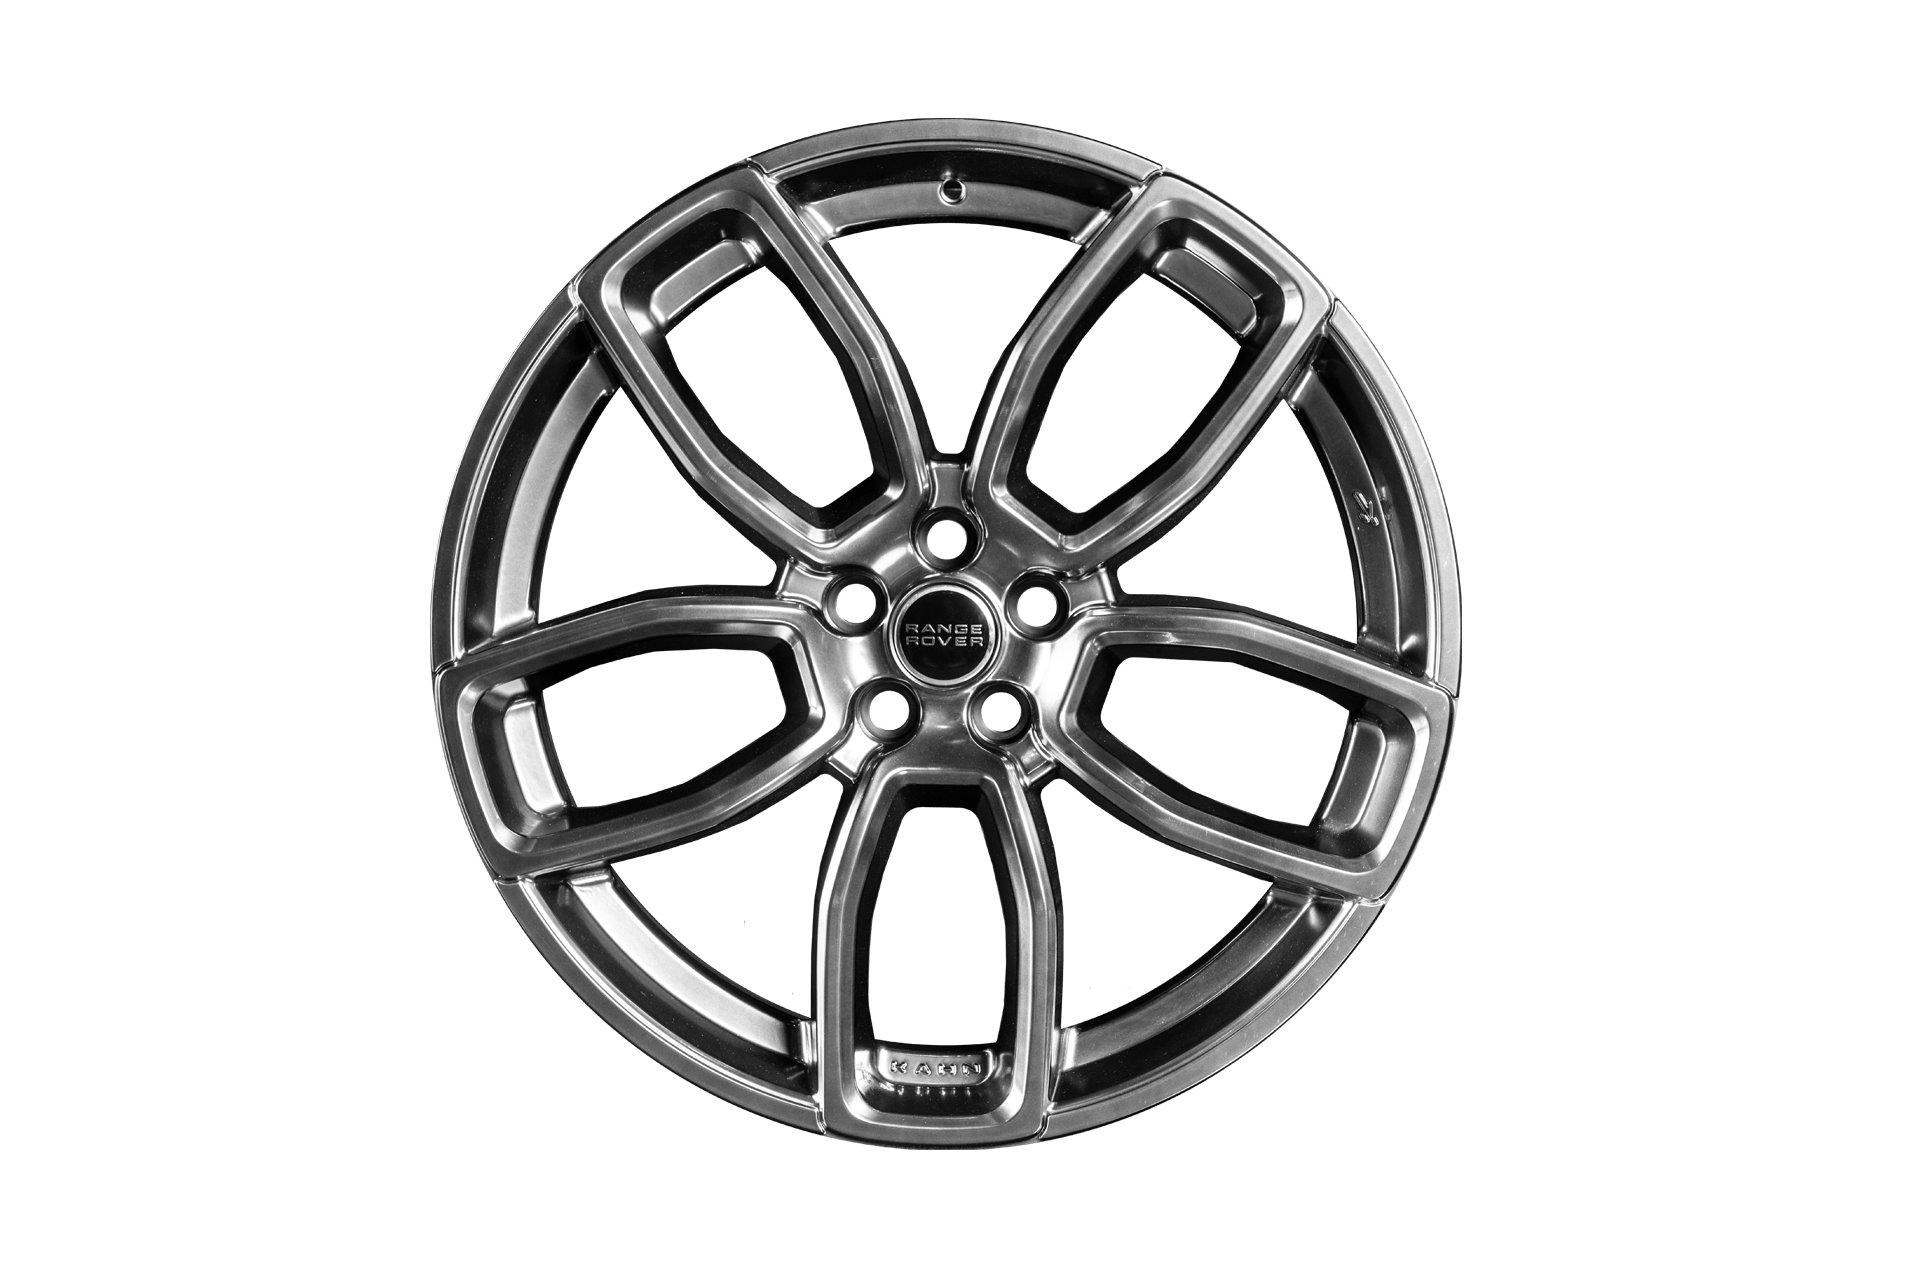 Range Rover Sport (2013-2018) 600Le Light Alloy Wheels by Kahn - Image 3543